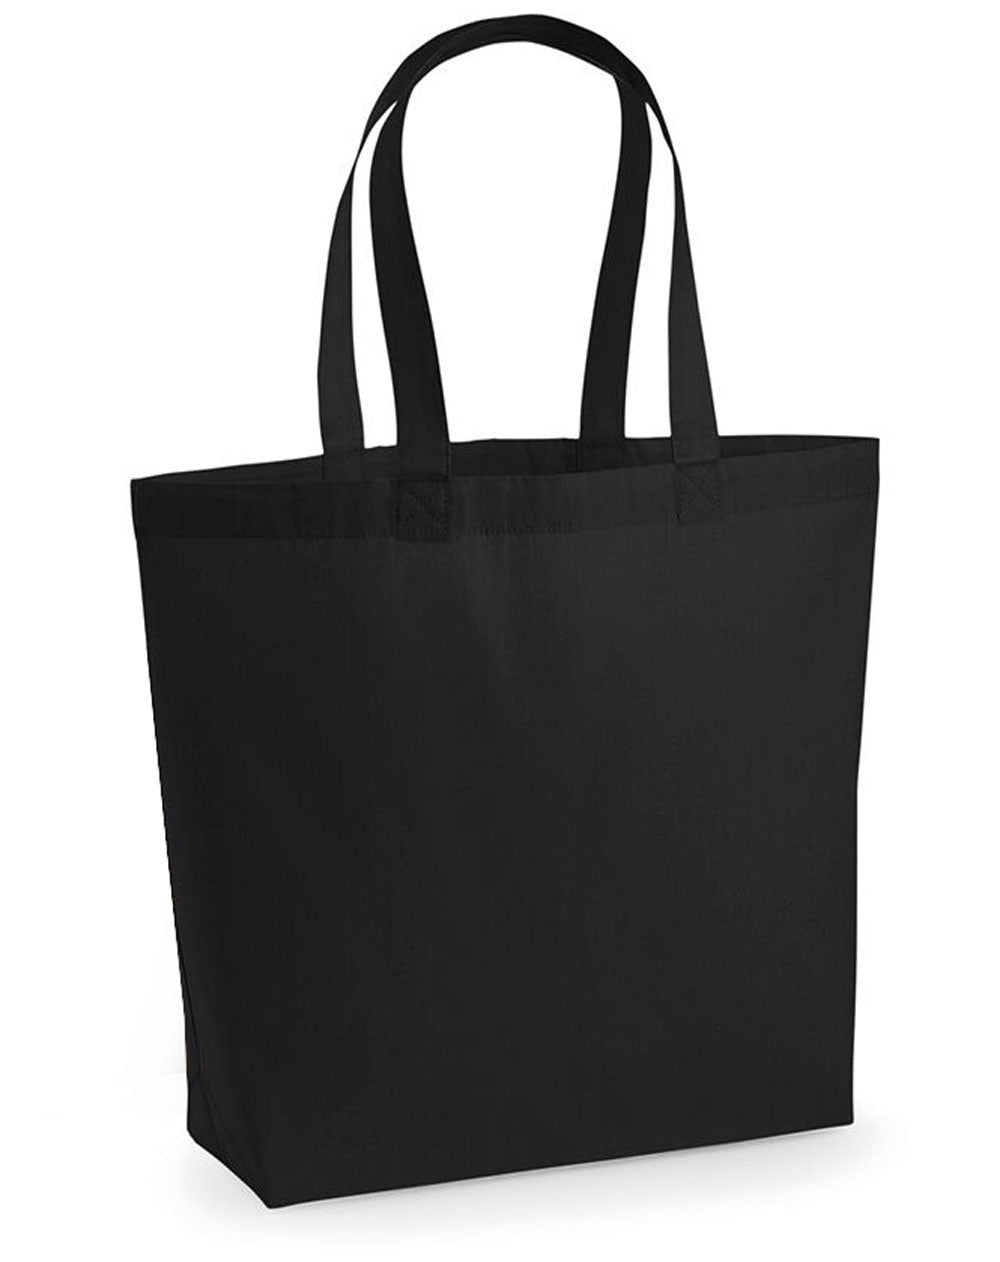 Independent woman lip tote bag in black